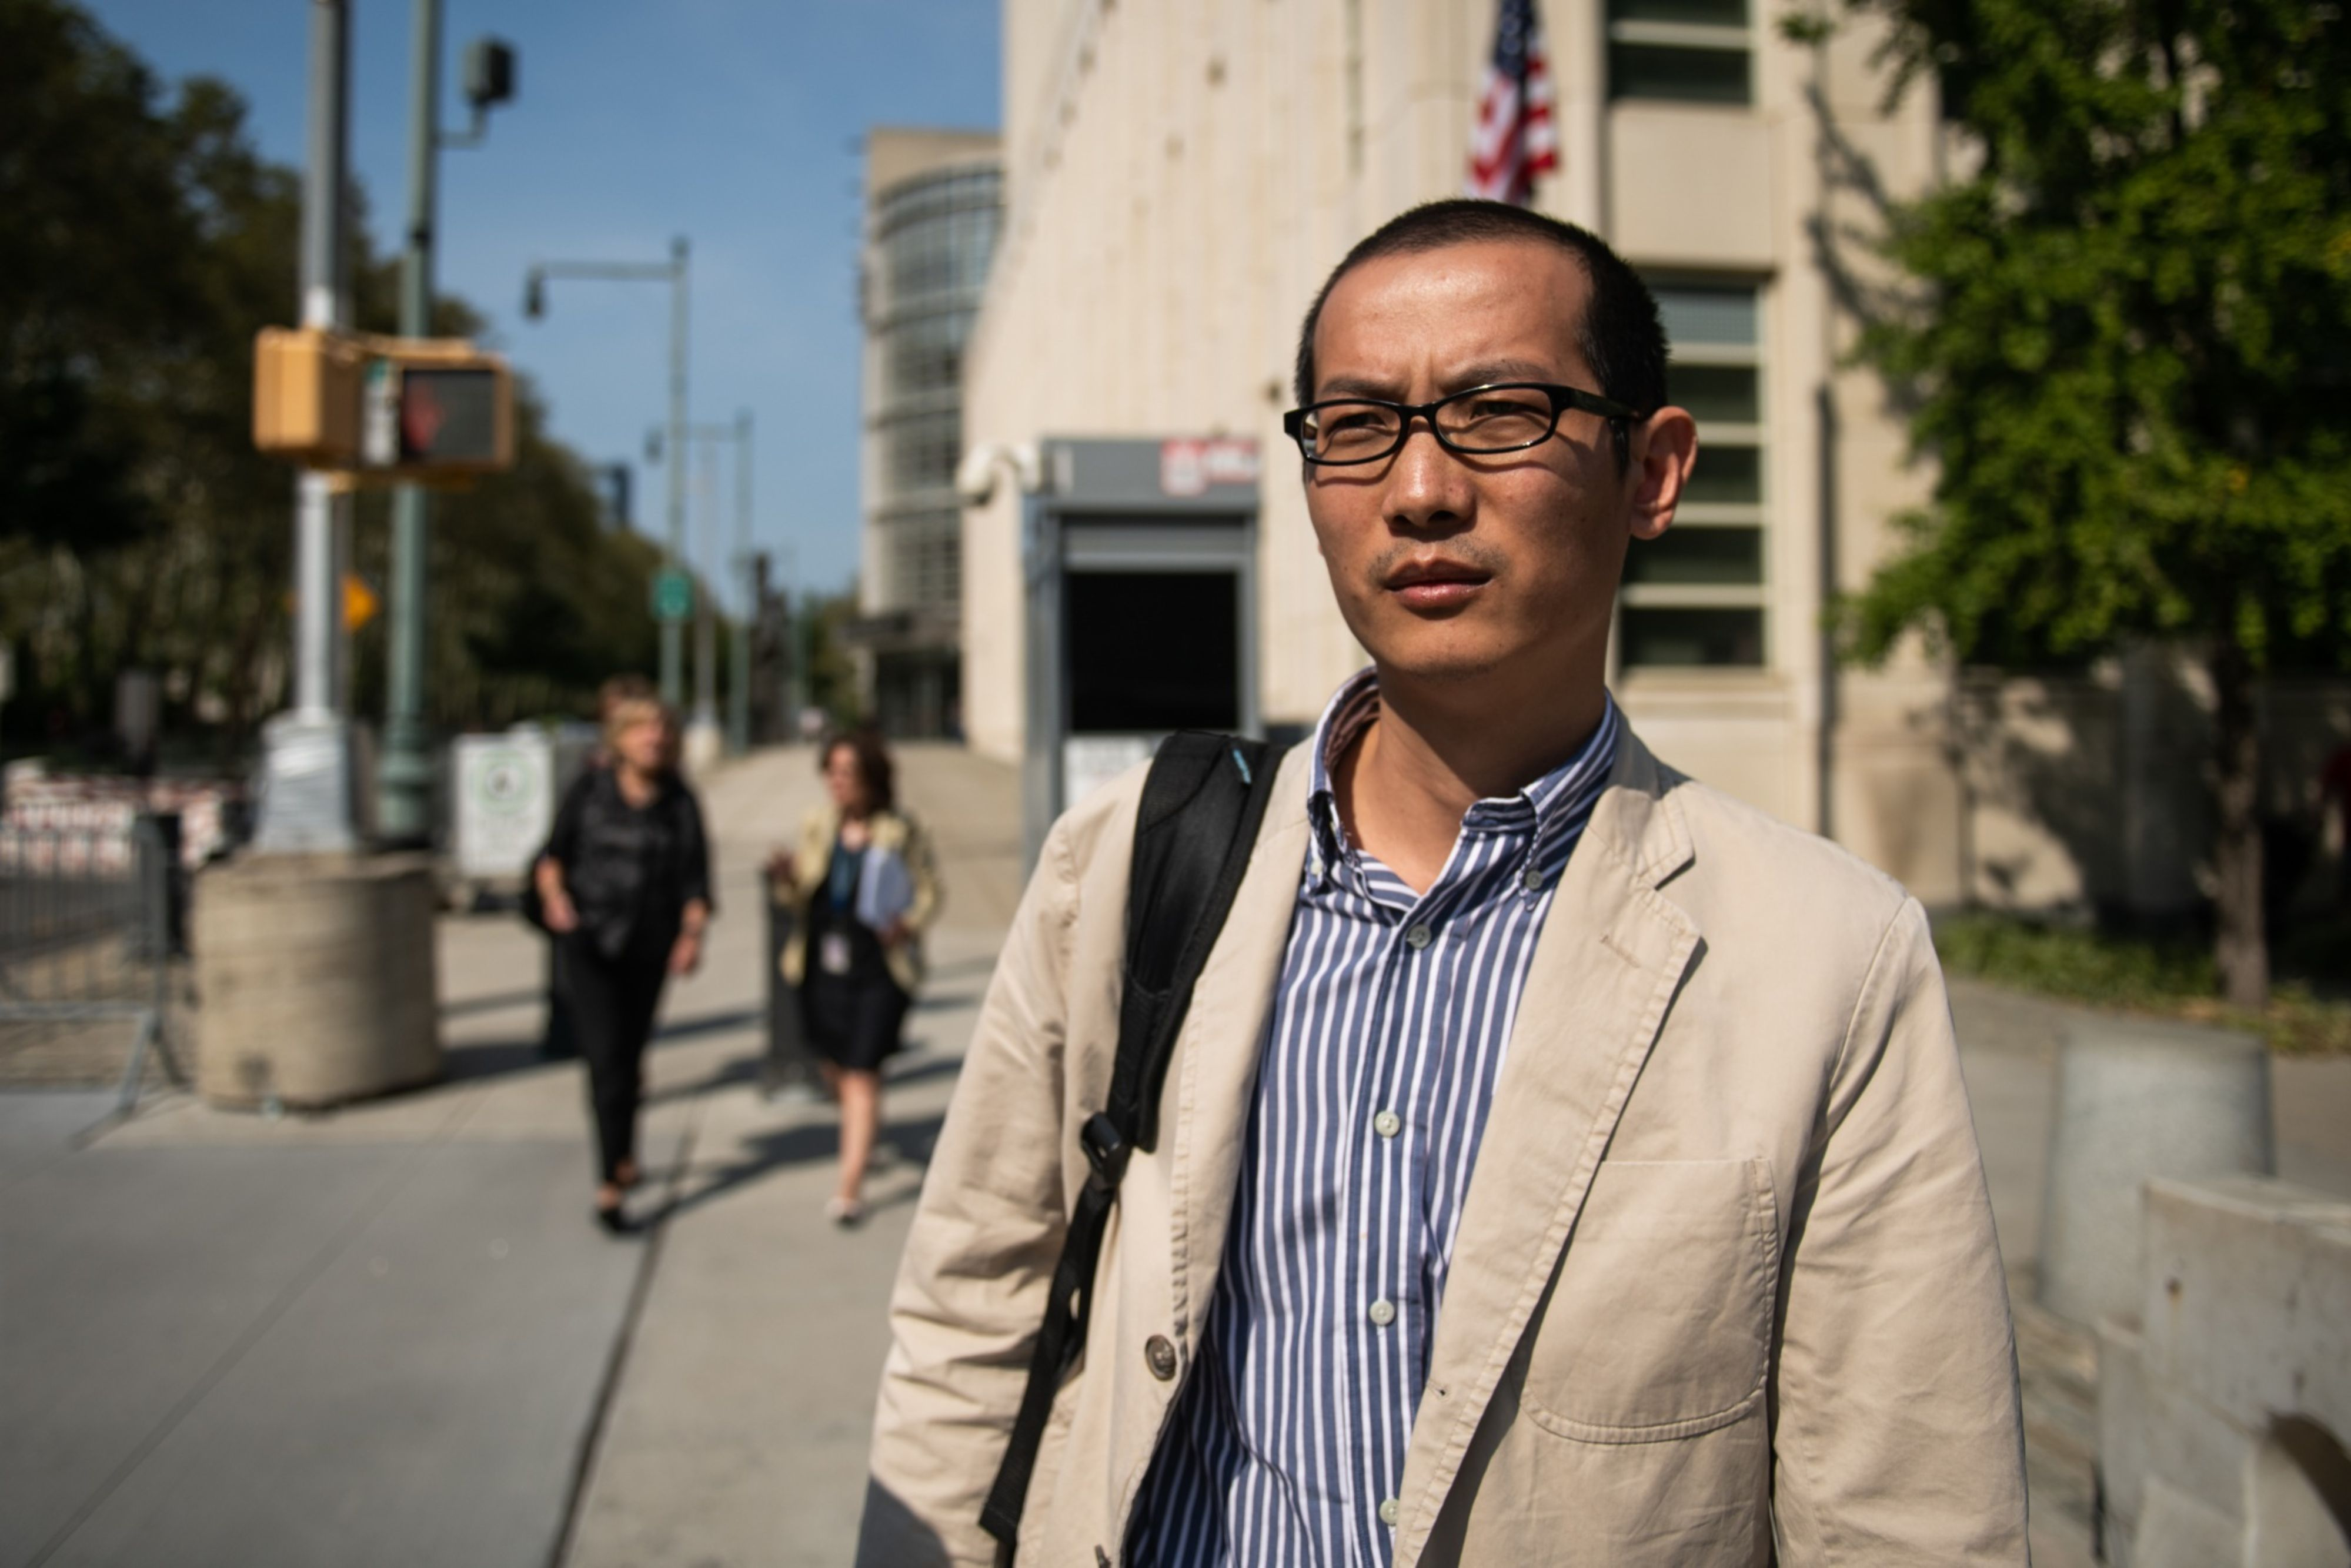 Bo Mao, a professor at Xiamen University in China and a visiting professor of computer science at the University of Texas at Arlington, departs federal court in New York on Sept. 11, 2019. Photo: Bloomberg